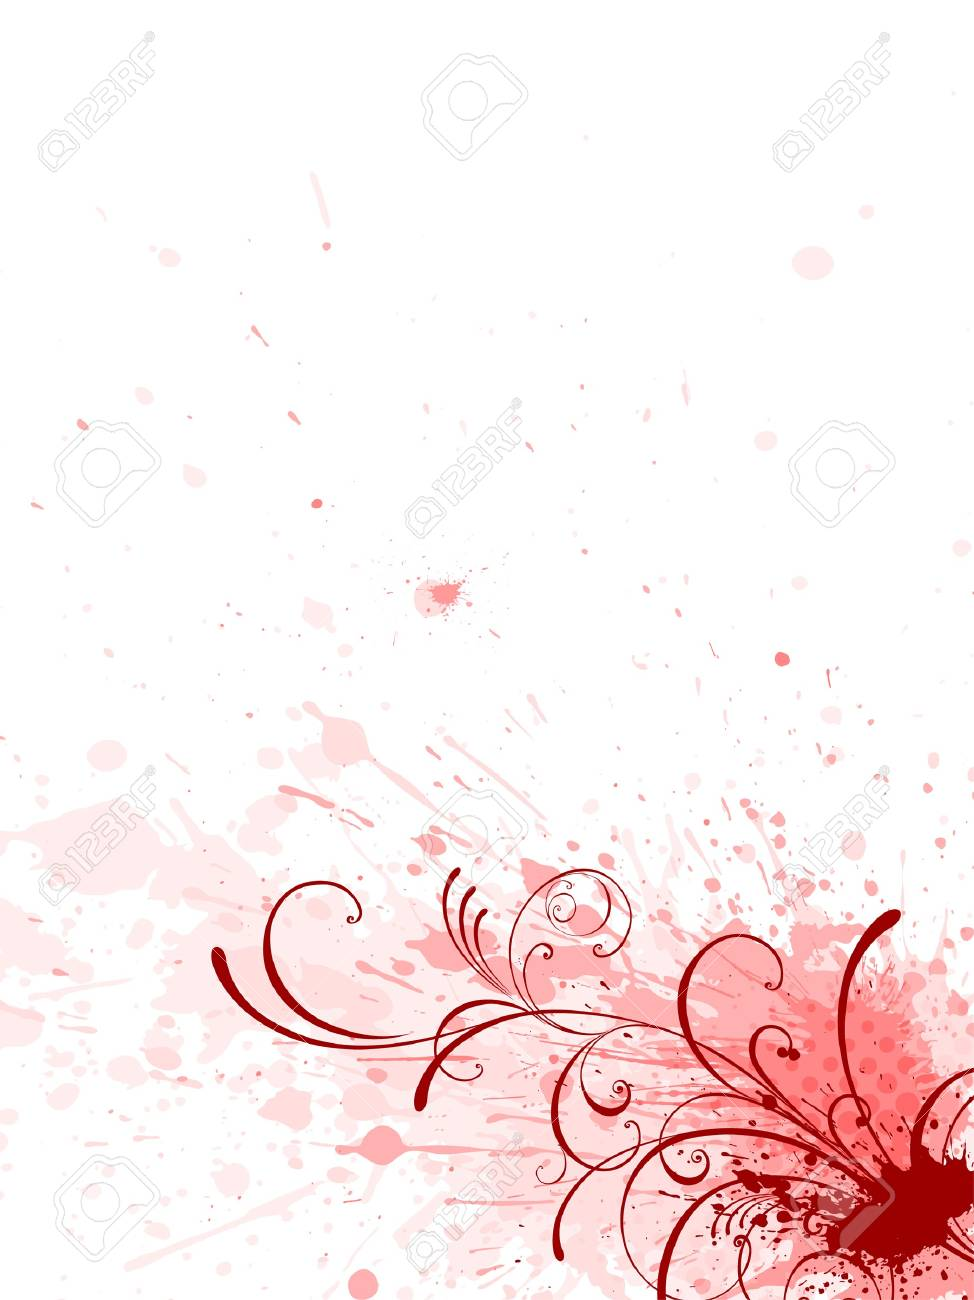 floral background, EPS 10, vector, floral style Stock Vector - 7310326